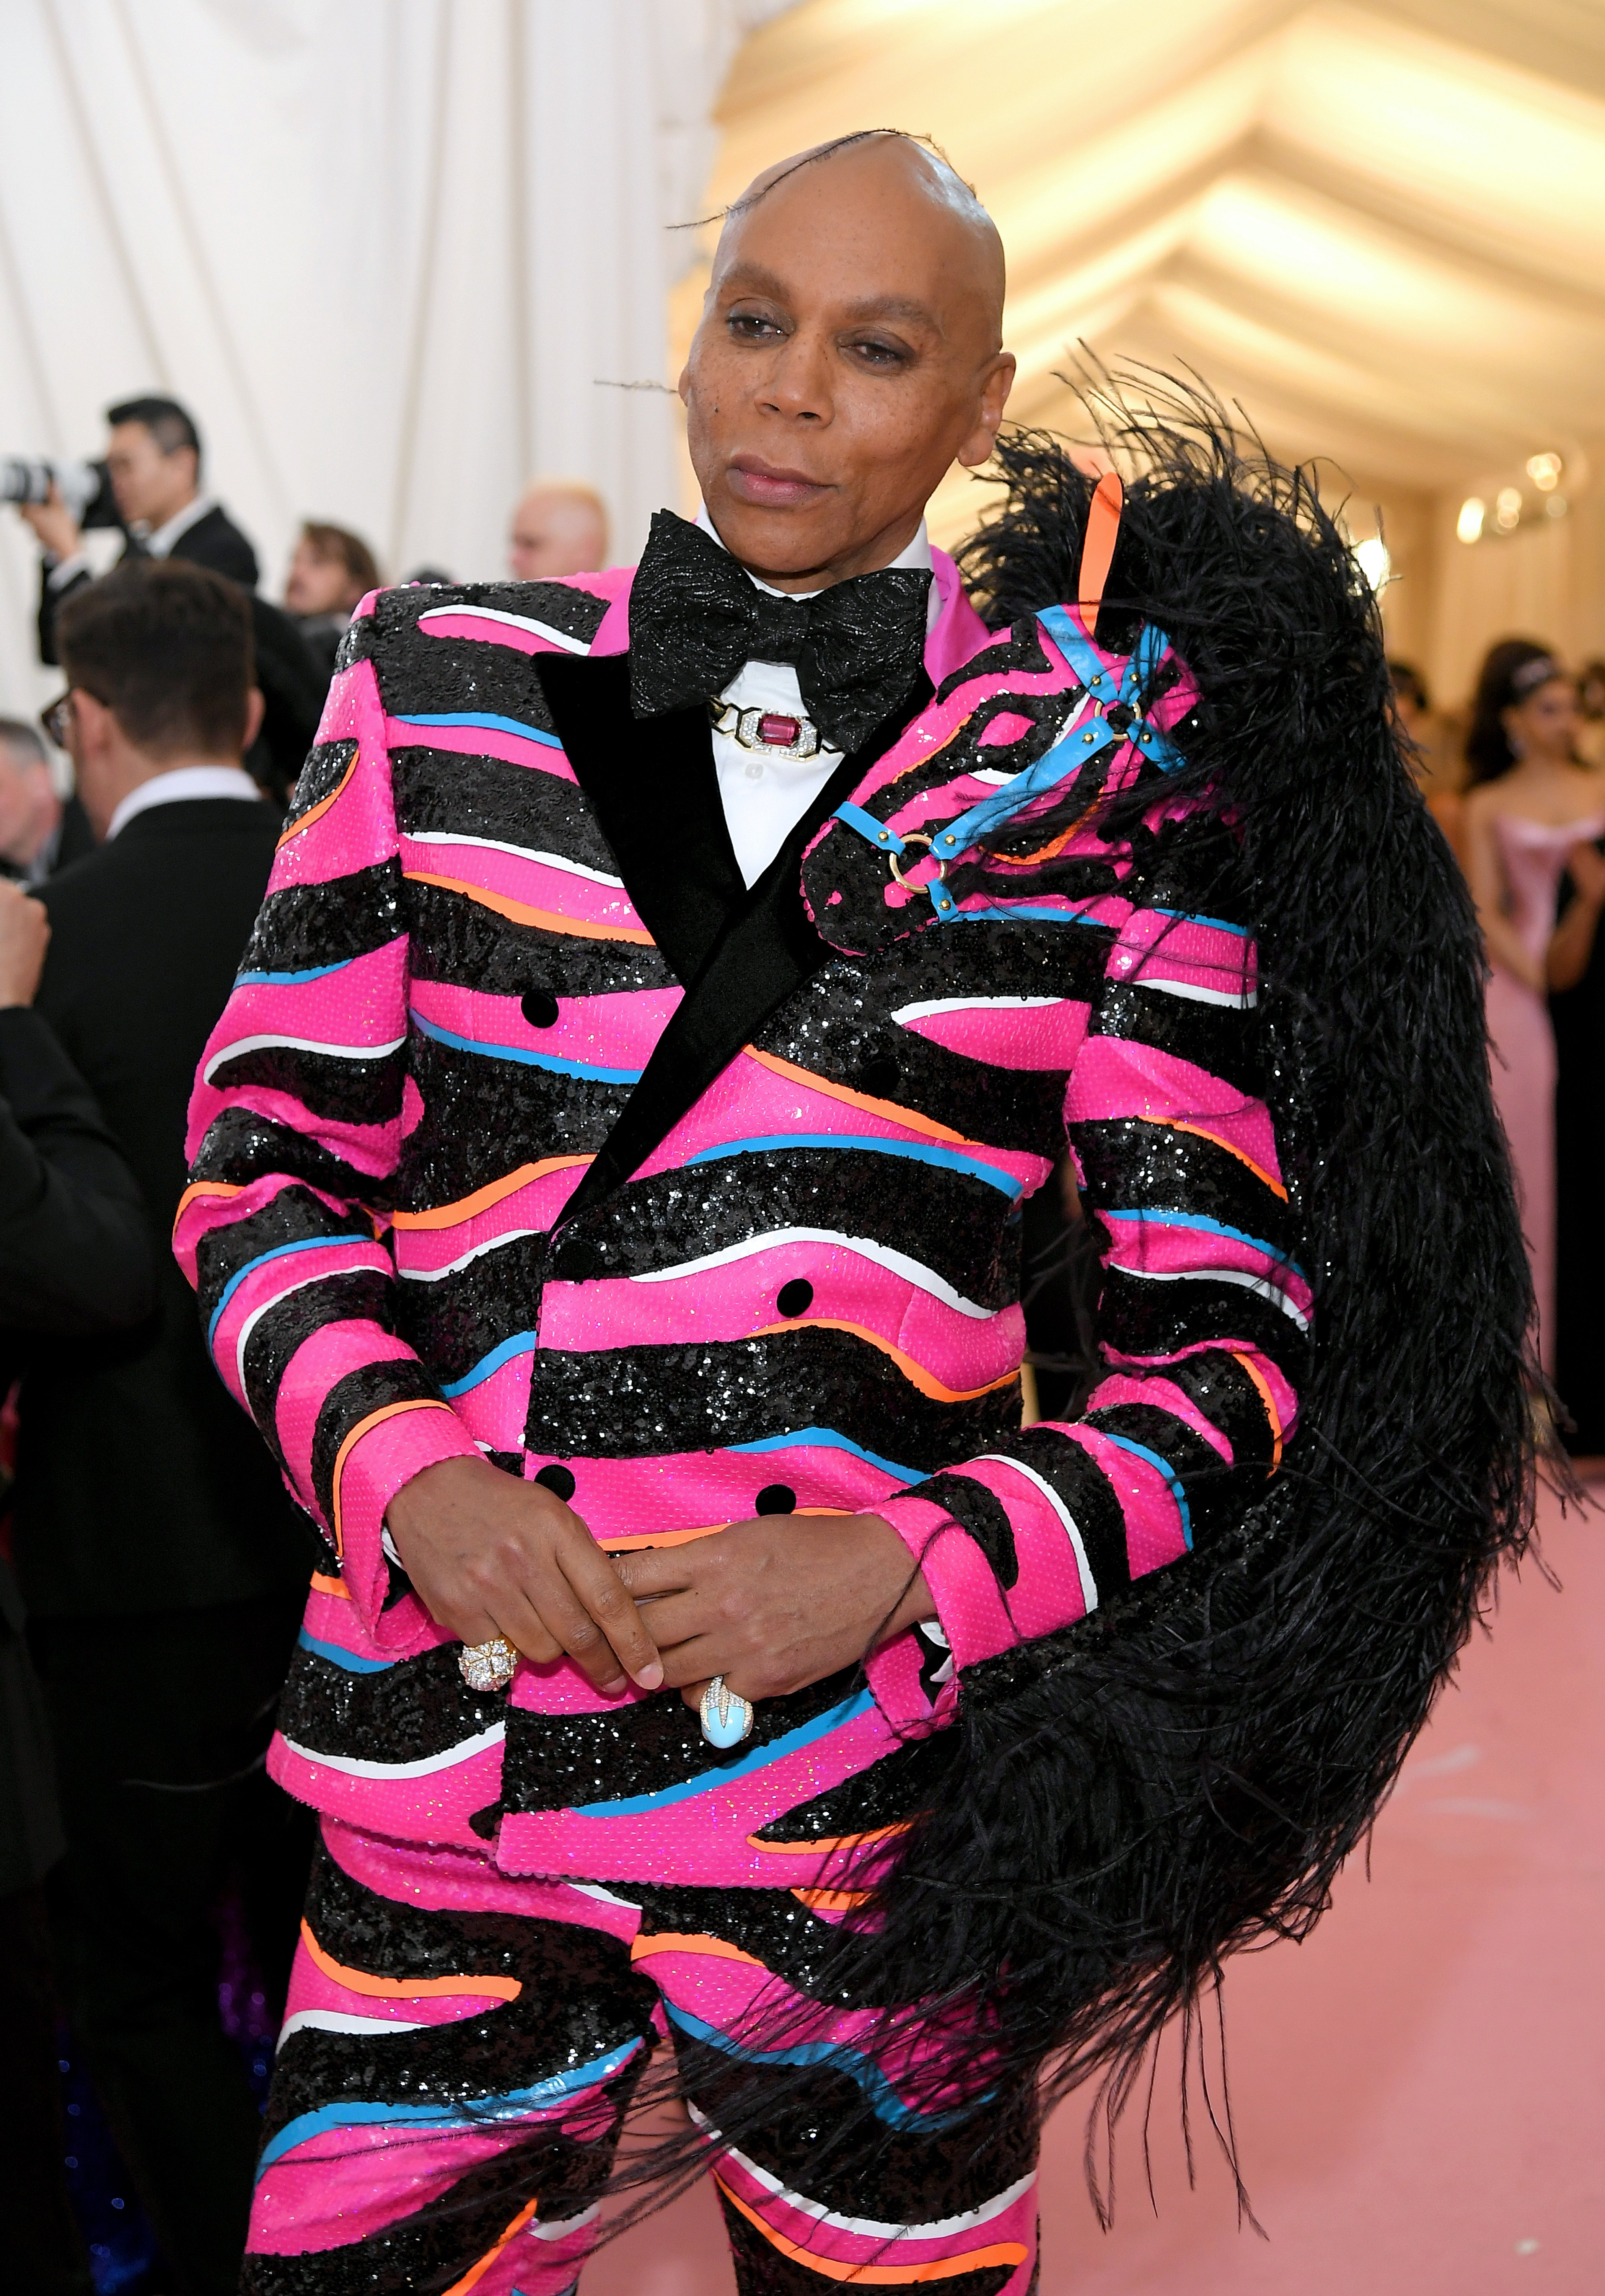 RuPaul pictured at the 2019 Met Gala in New York City.   Photo: Getty Images